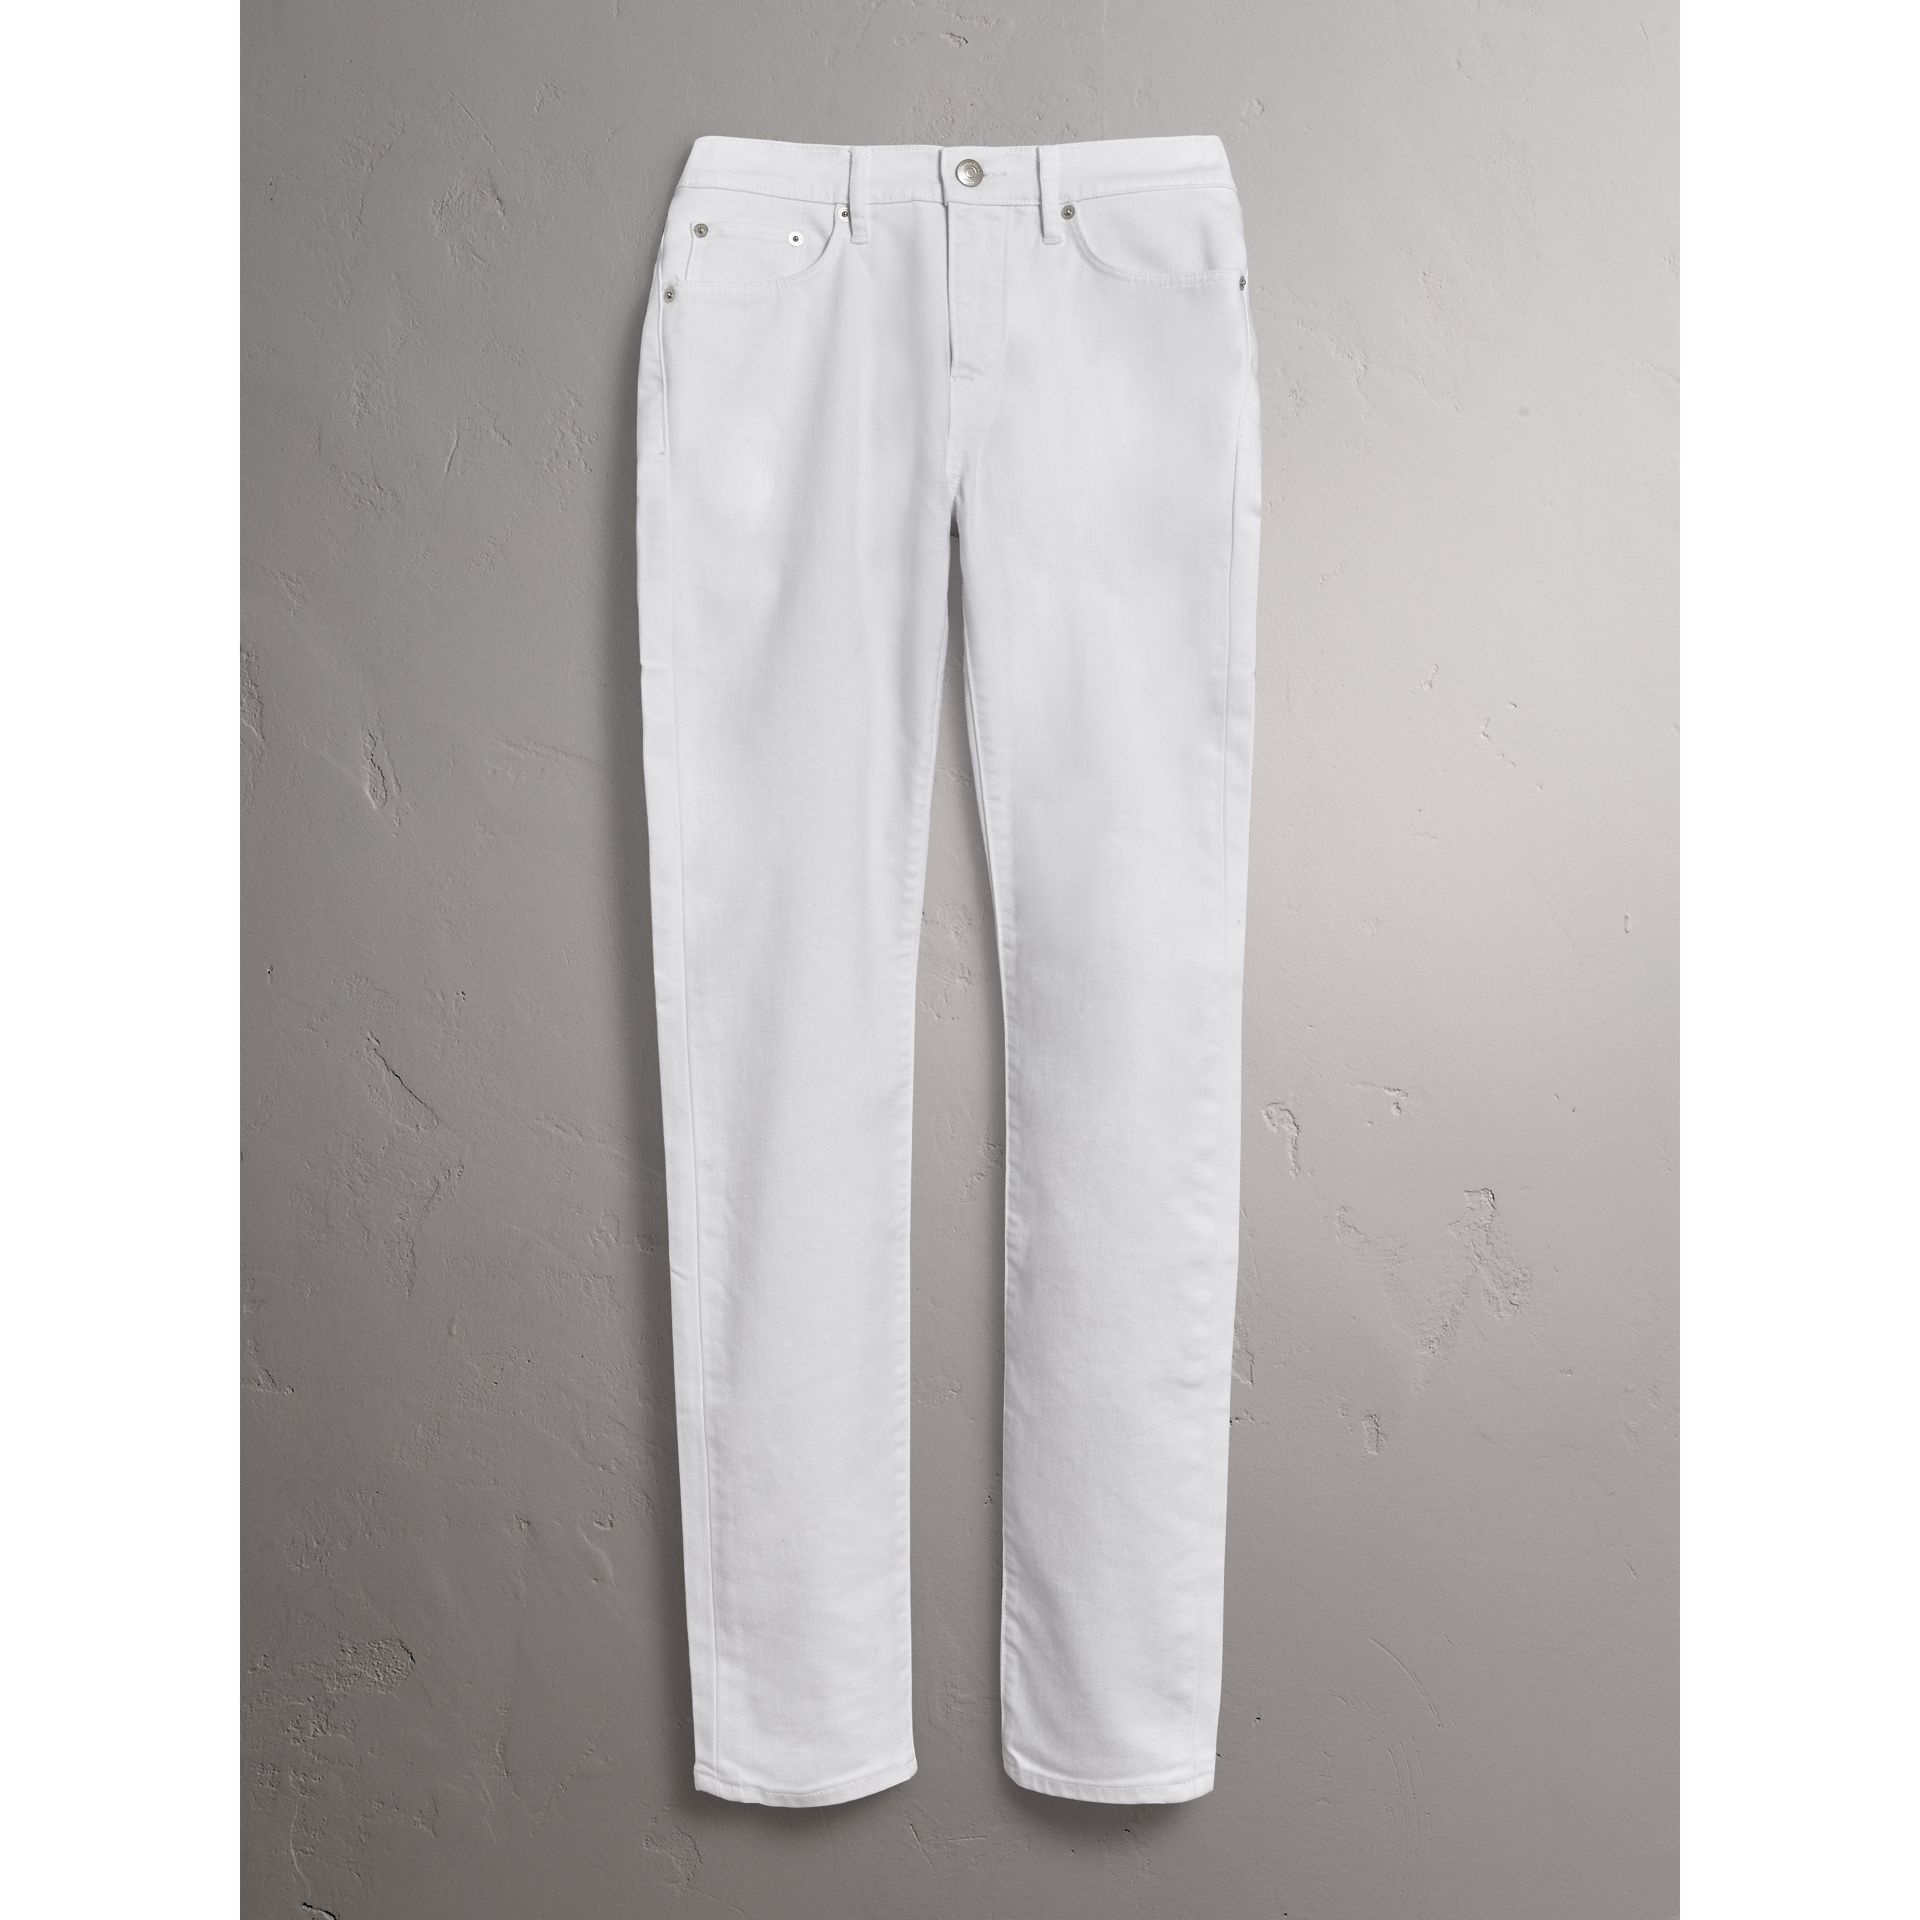 Slim Fit Stretch Japanese Denim Jeans in White - Men | Burberry United States - gallery image 4